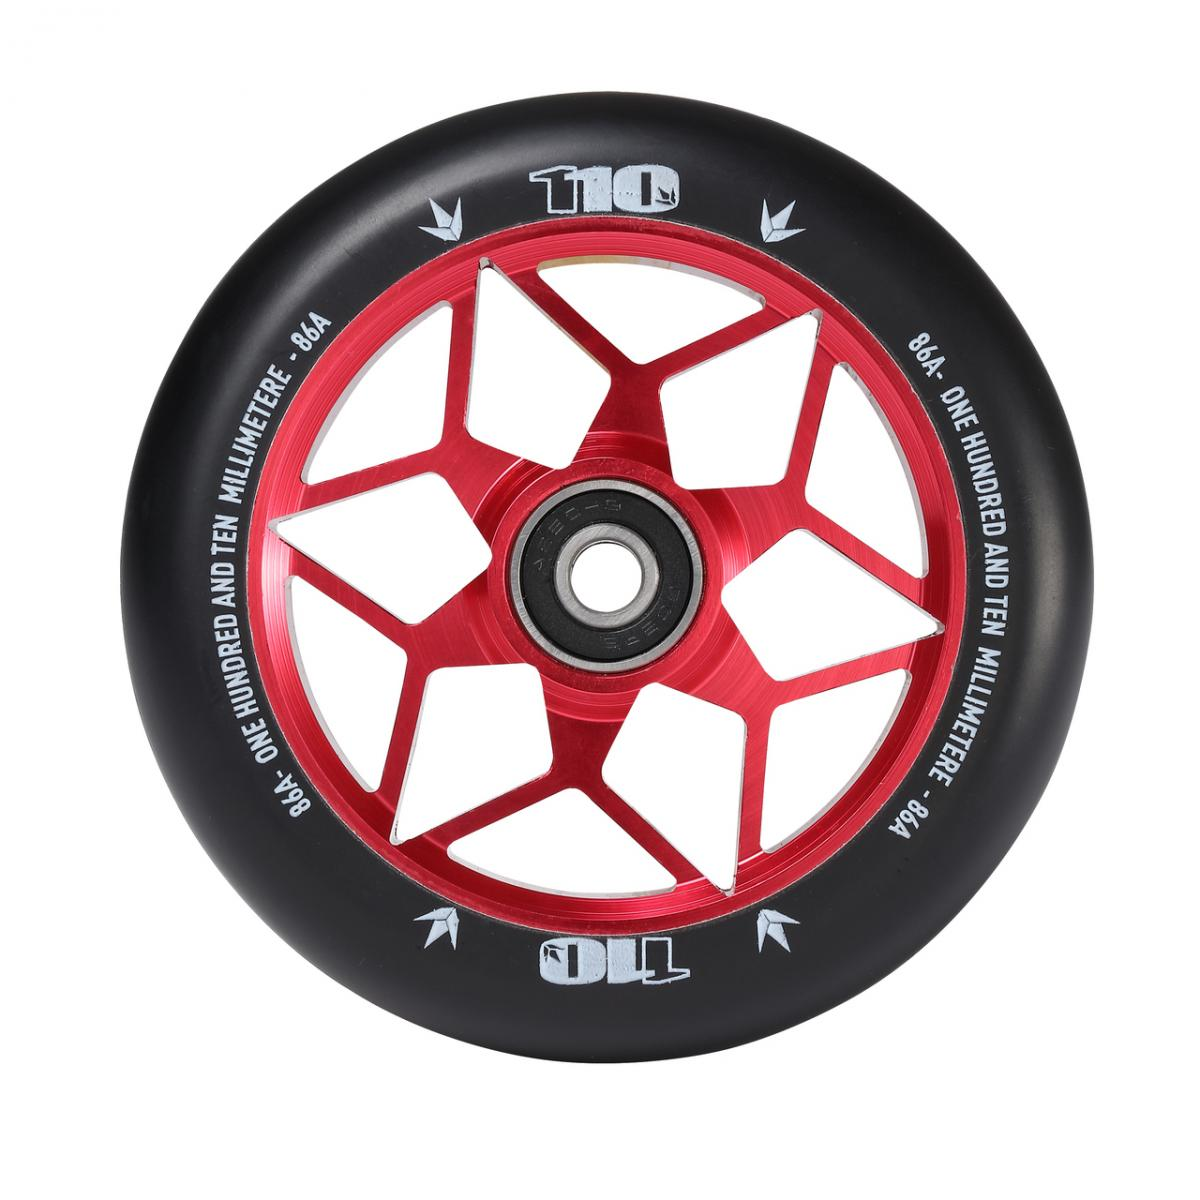 ENVY 110mm DIAMOND BLACK/RED WHEEL